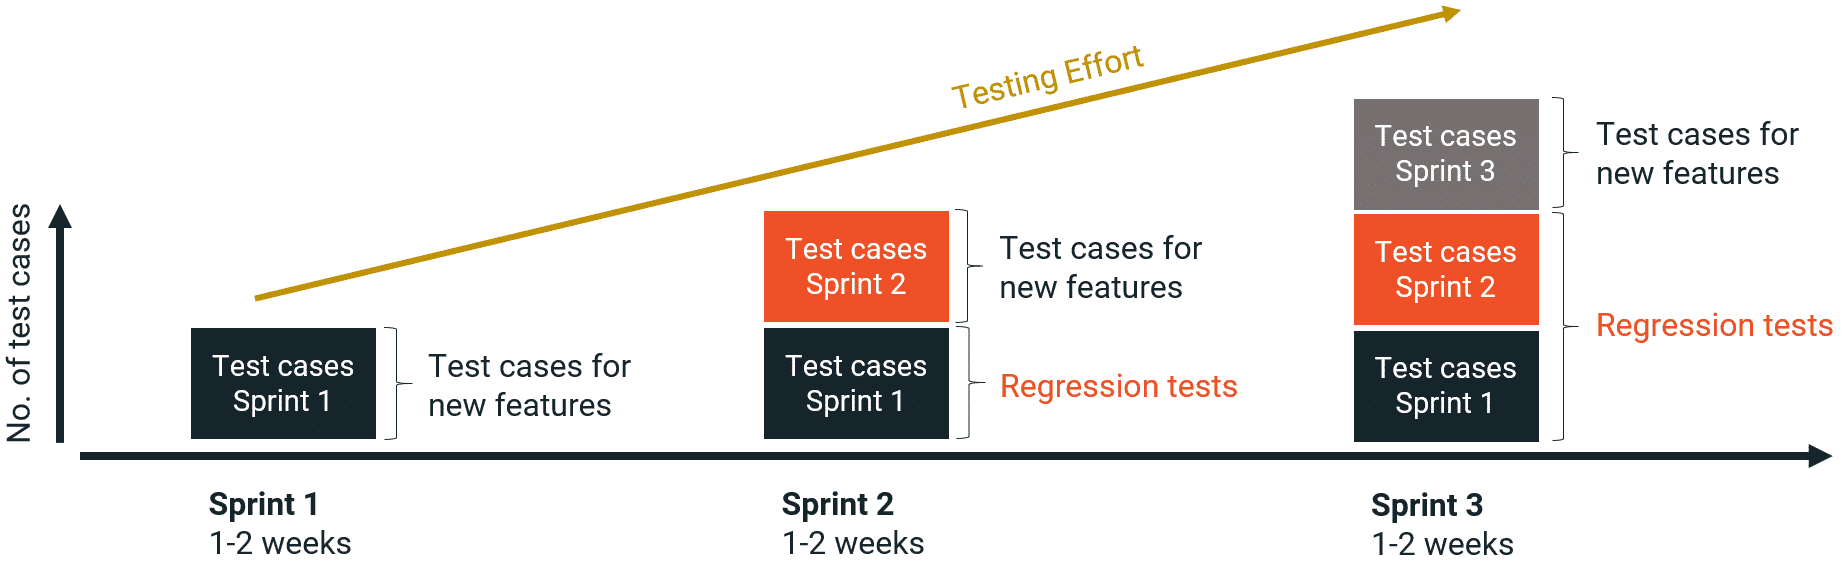 Growing amount of testcases in an agile project